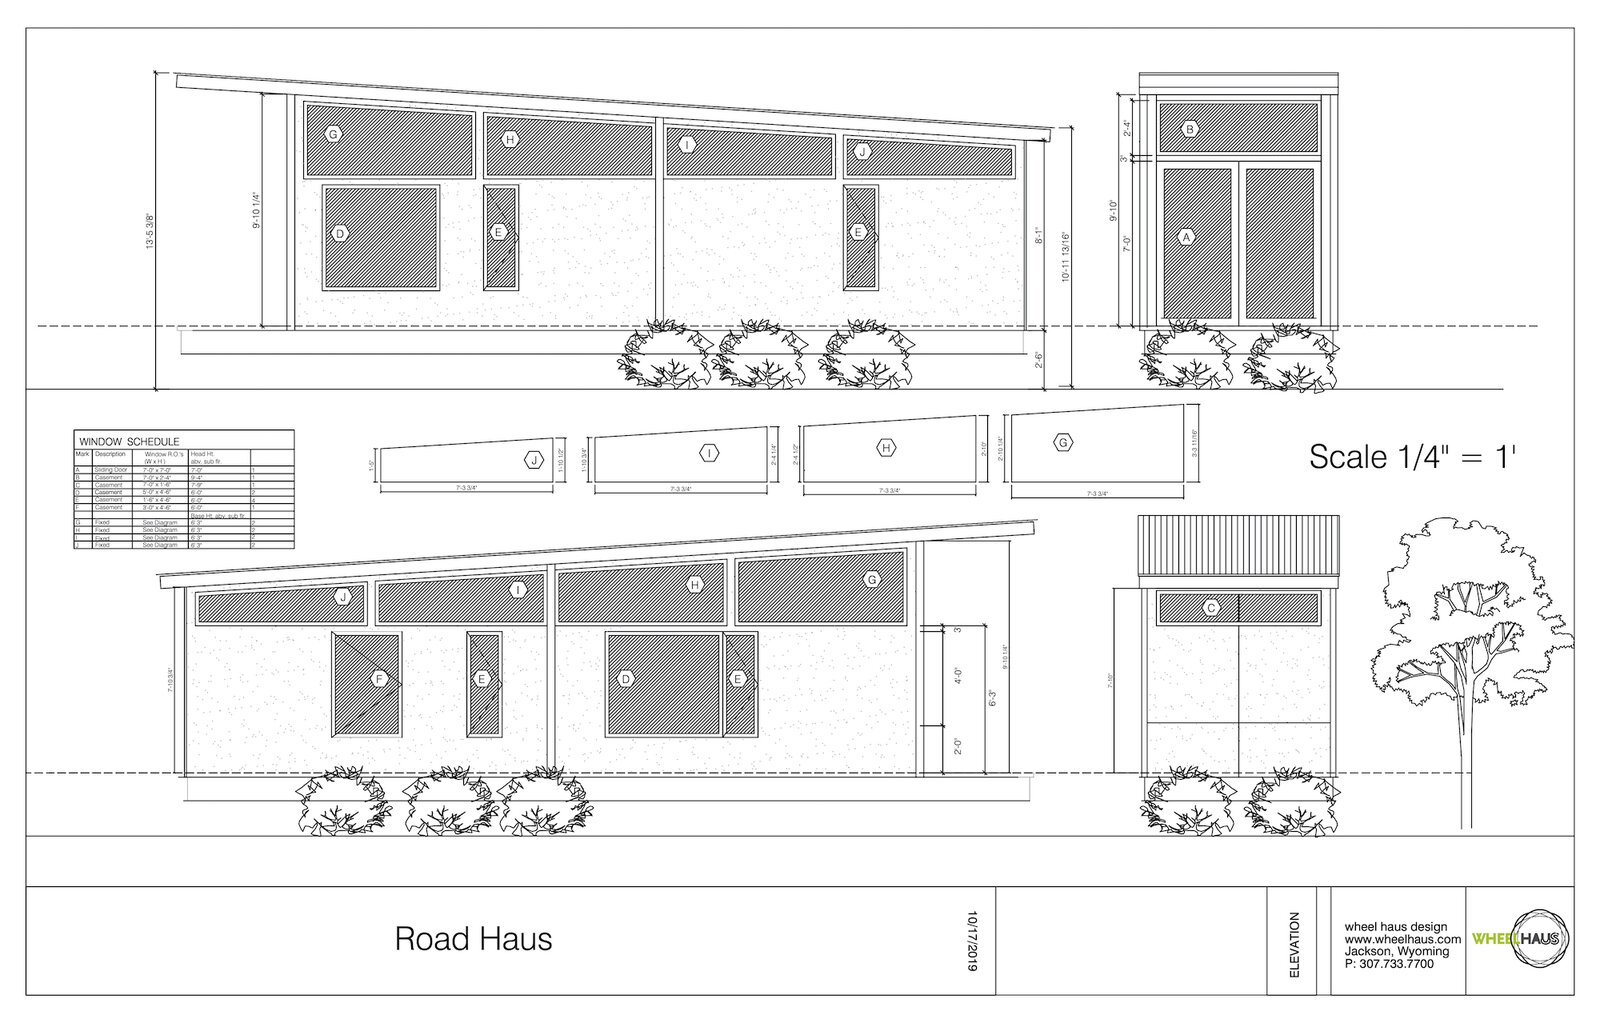 Elevations of Road-Haus by Wheelhaus  Photo 15 of 15 in This 250-Square-Foot Prefab Cabin Fits a Queen Bed and a Fireplace